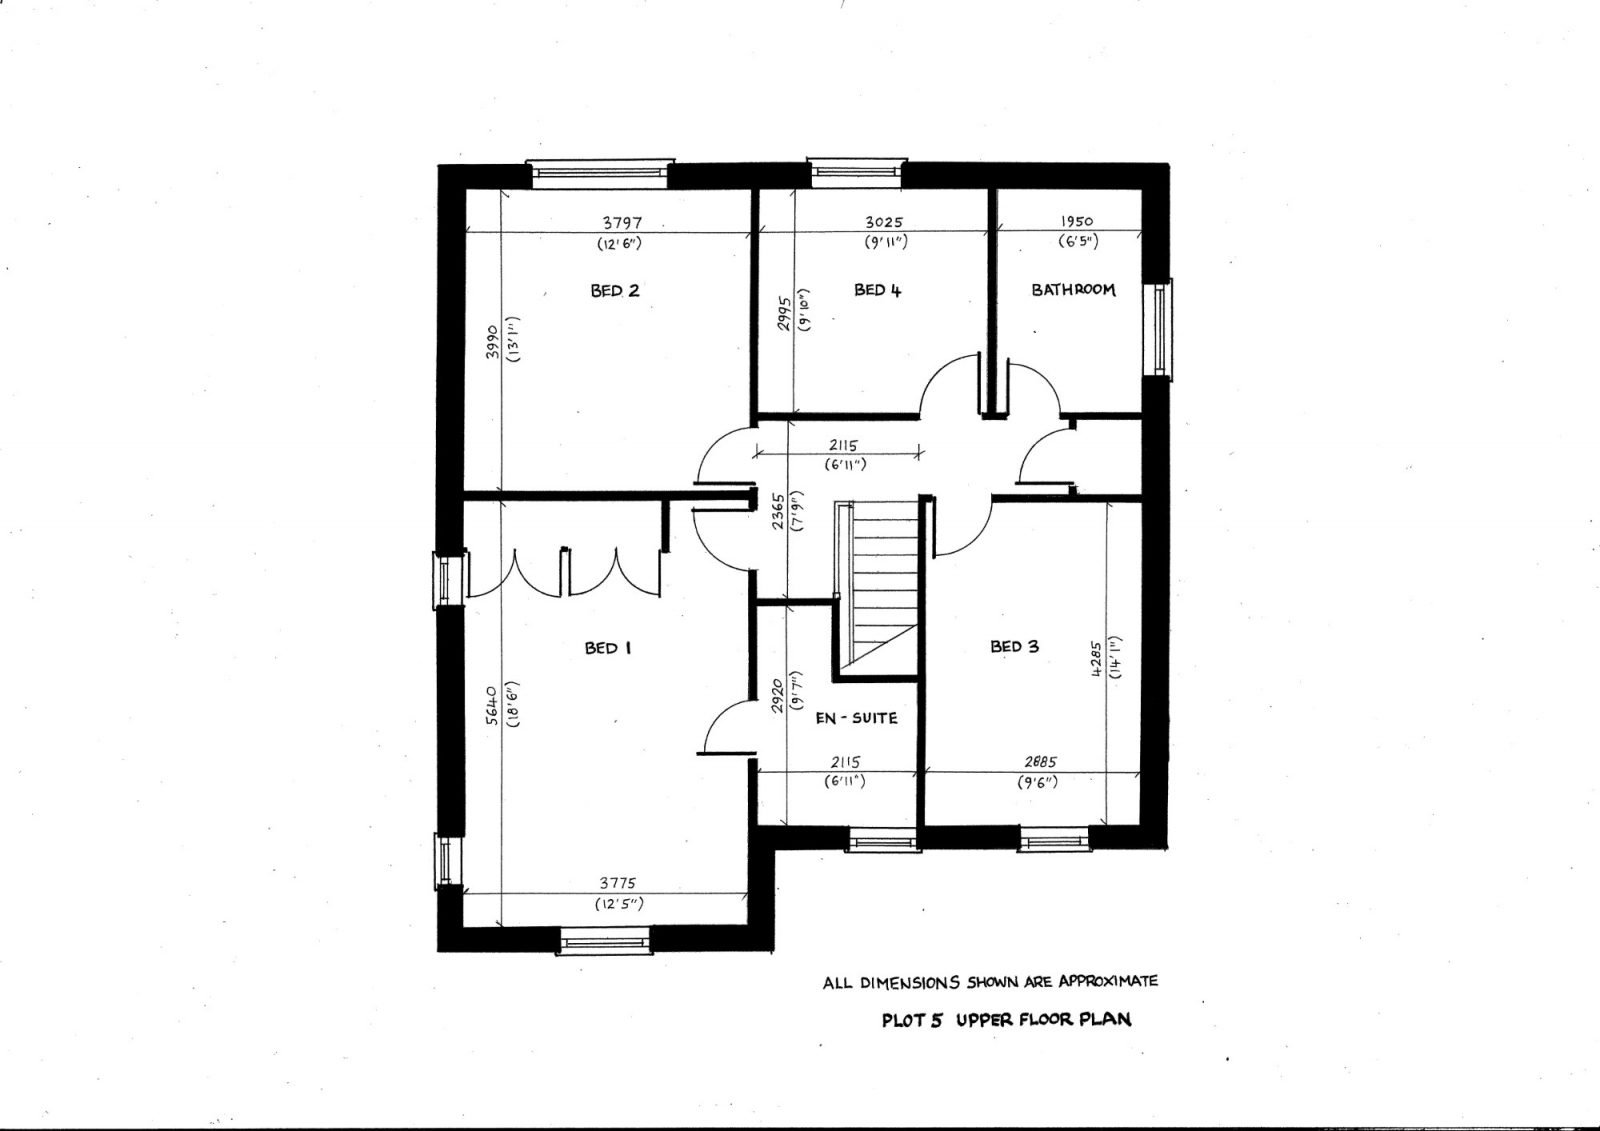 plot 5 upper floor plan